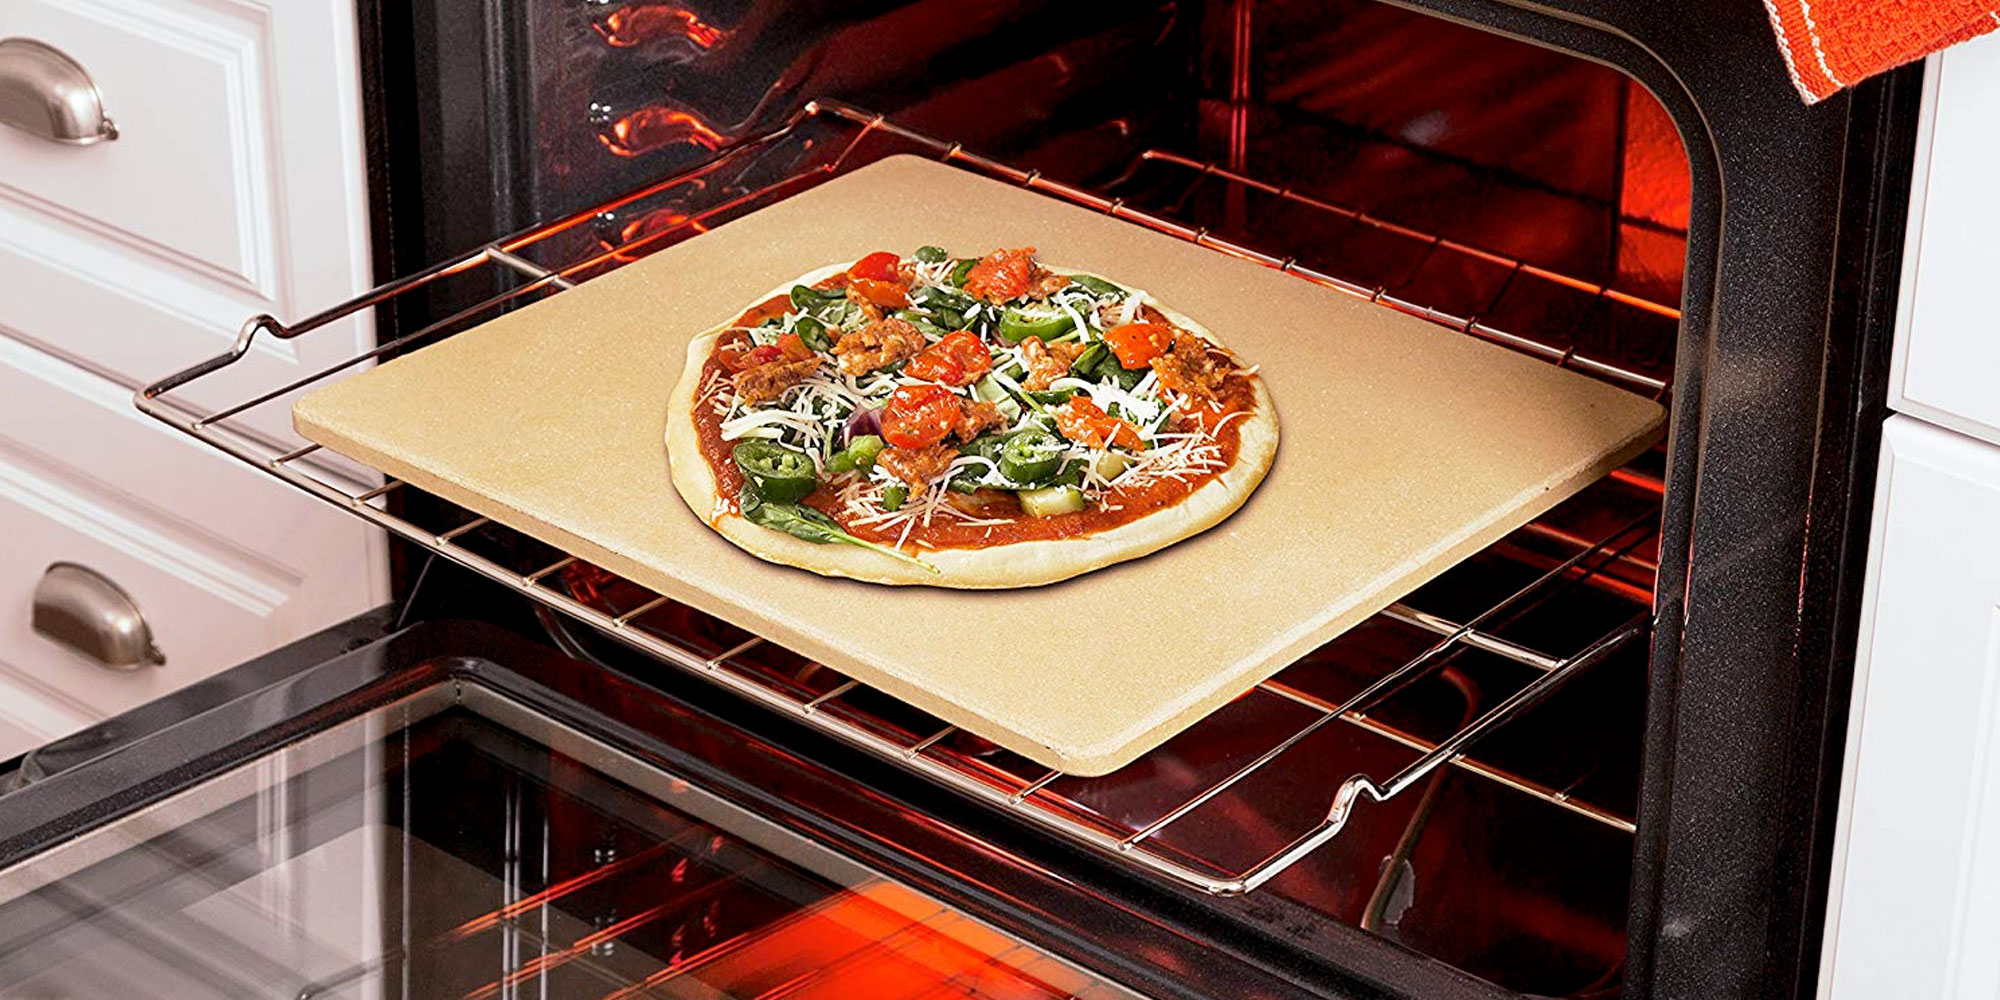 Bake Pizza Pro With 30 Rectangular Oven Stone Reg. 40 - 9to5toys